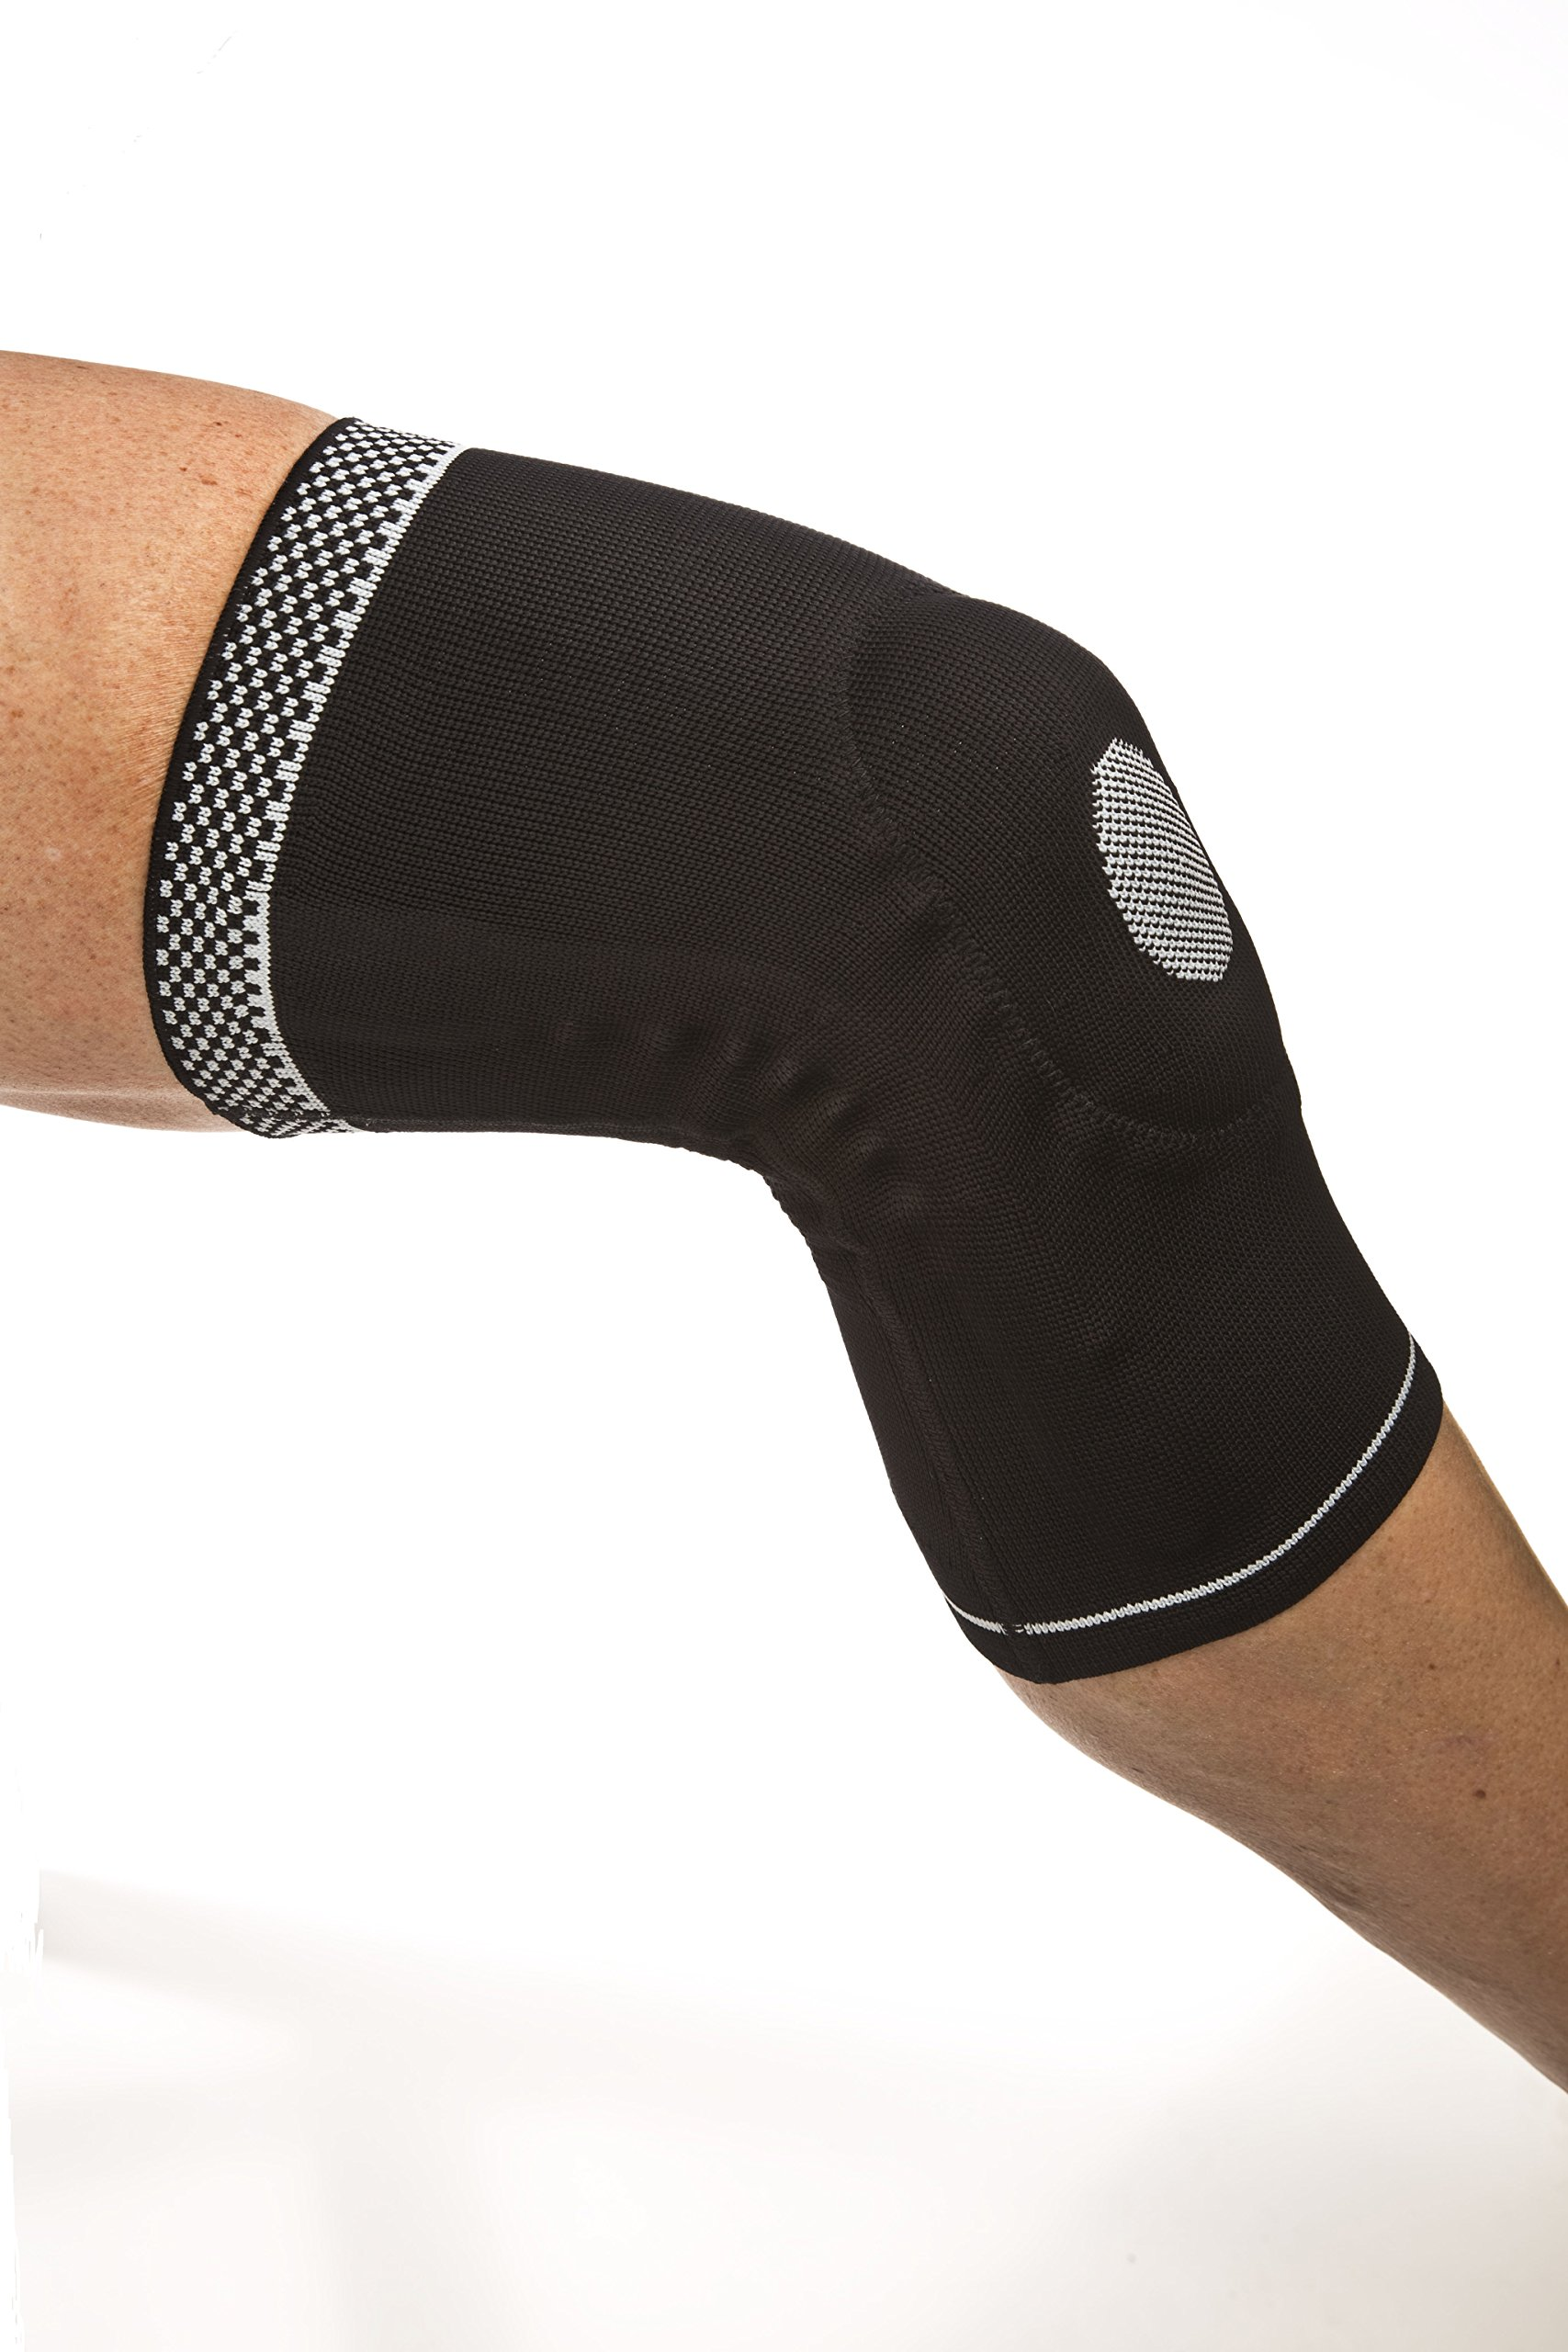 Cho-Pat Dynamic Knee Compression Sleeve - for Knee Support, Arthritis, Patellar Support, Meniscus Tear, Joint Pain Relief and Recovery (Large, 18 1/2''-19 3/4'''') by Cho-Pat